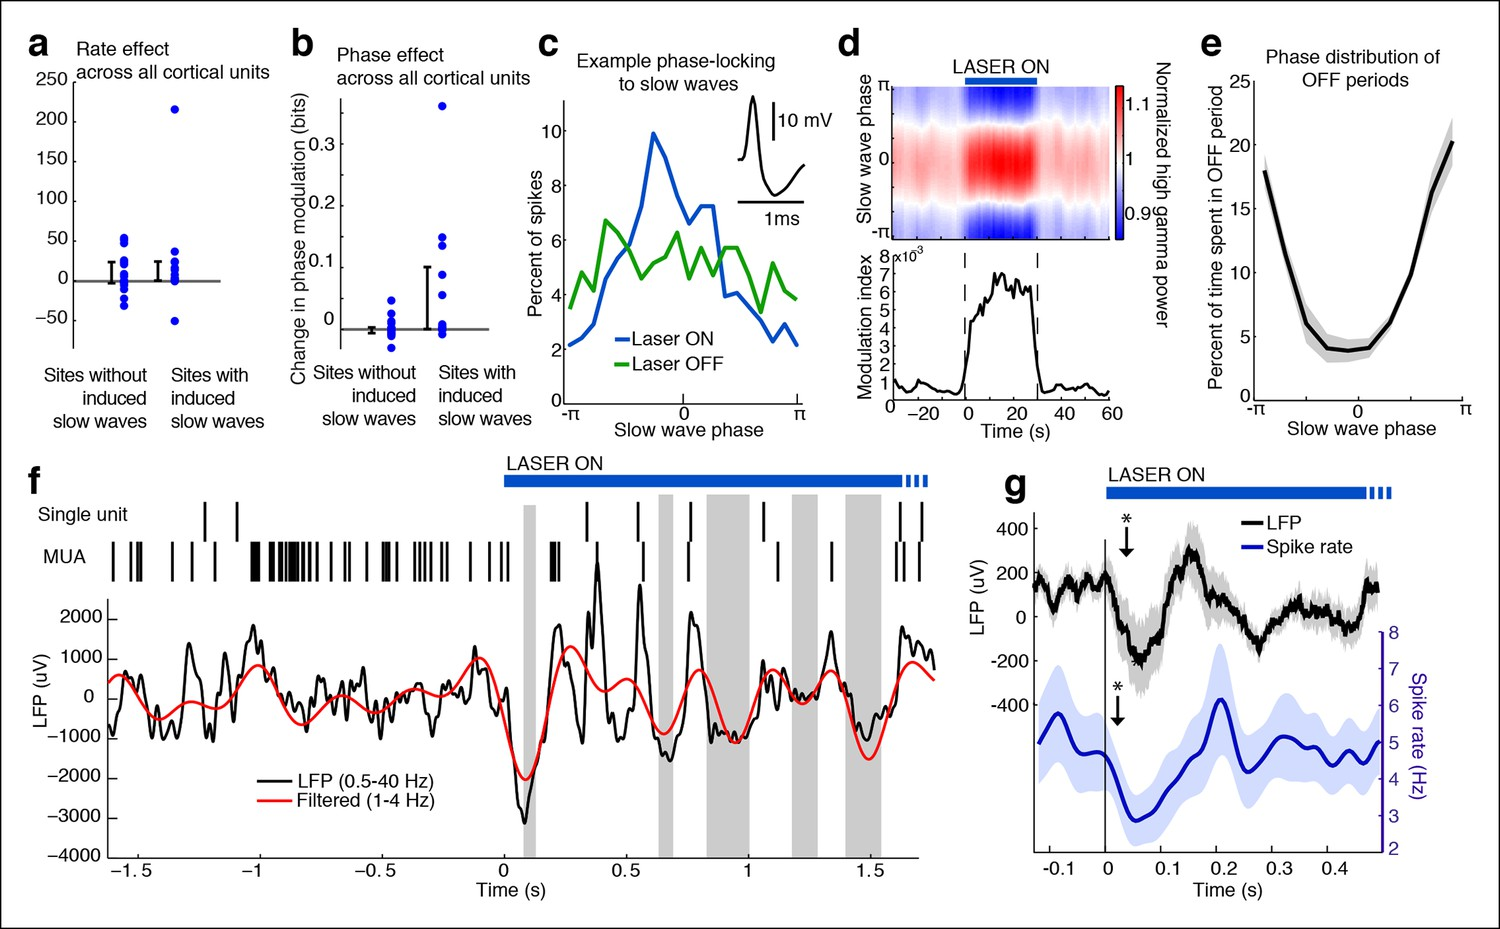 Thalamic Reticular Nucleus Induces Fast And Local Modulation Of Ci 65 Central Locking Interface Wiring Diagram Cortical Units Undergo Off Periods That Are Phase Locked To The Slow Waves During Trn Activation